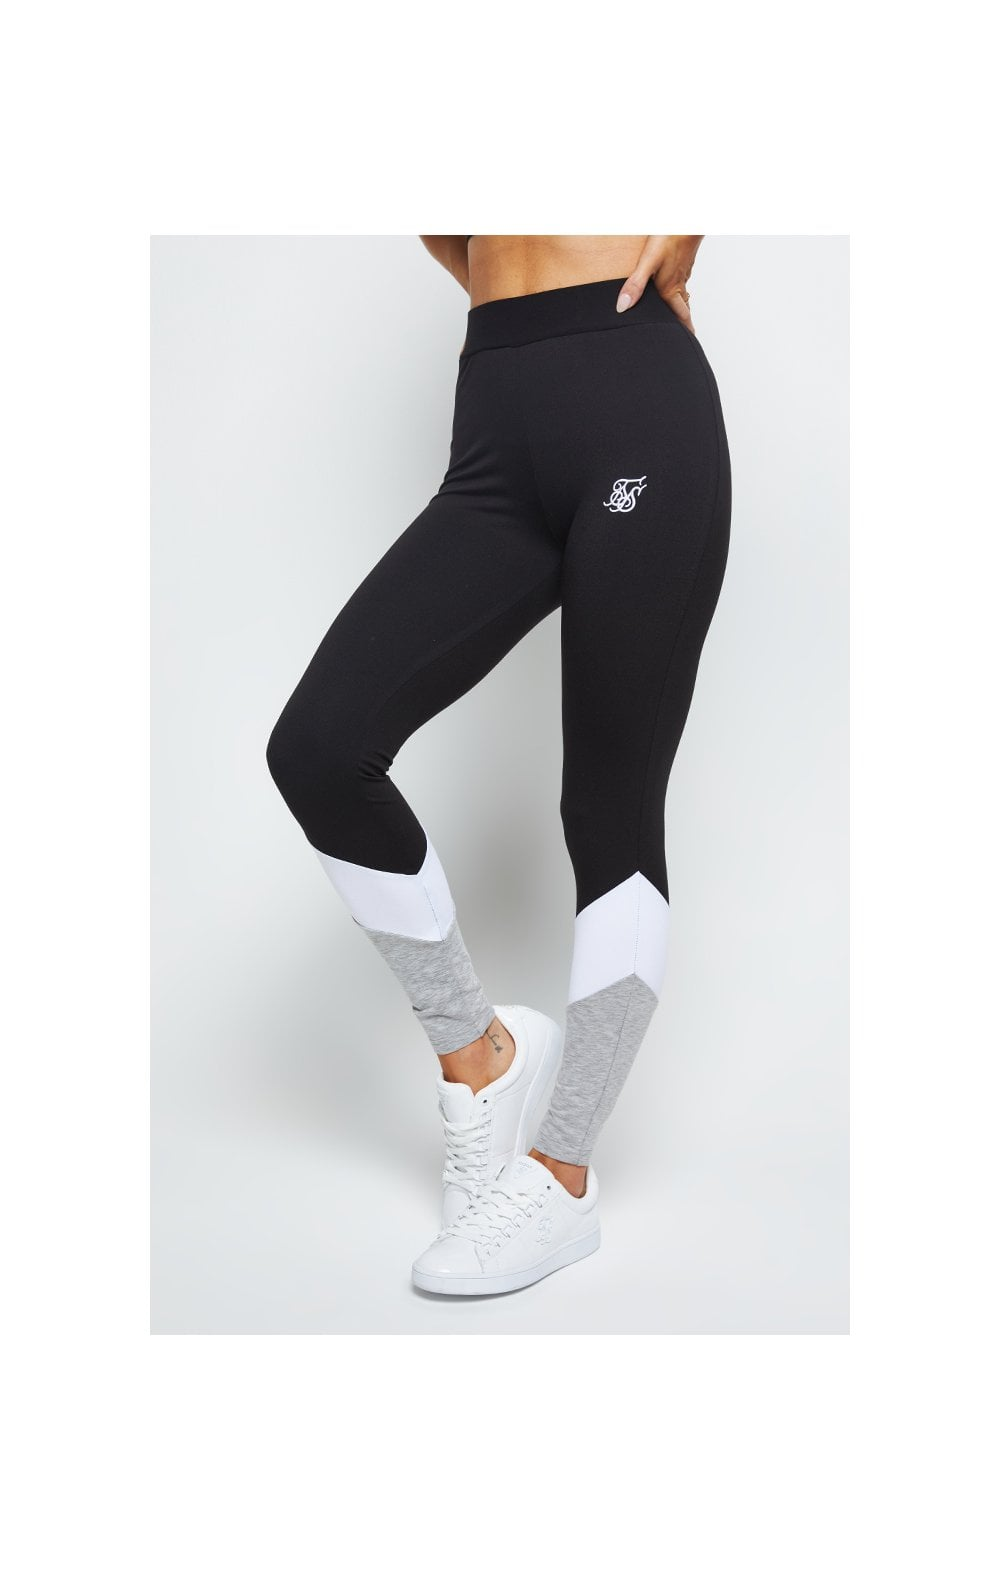 SikSilk Sportive Leggings - Grey Black & White